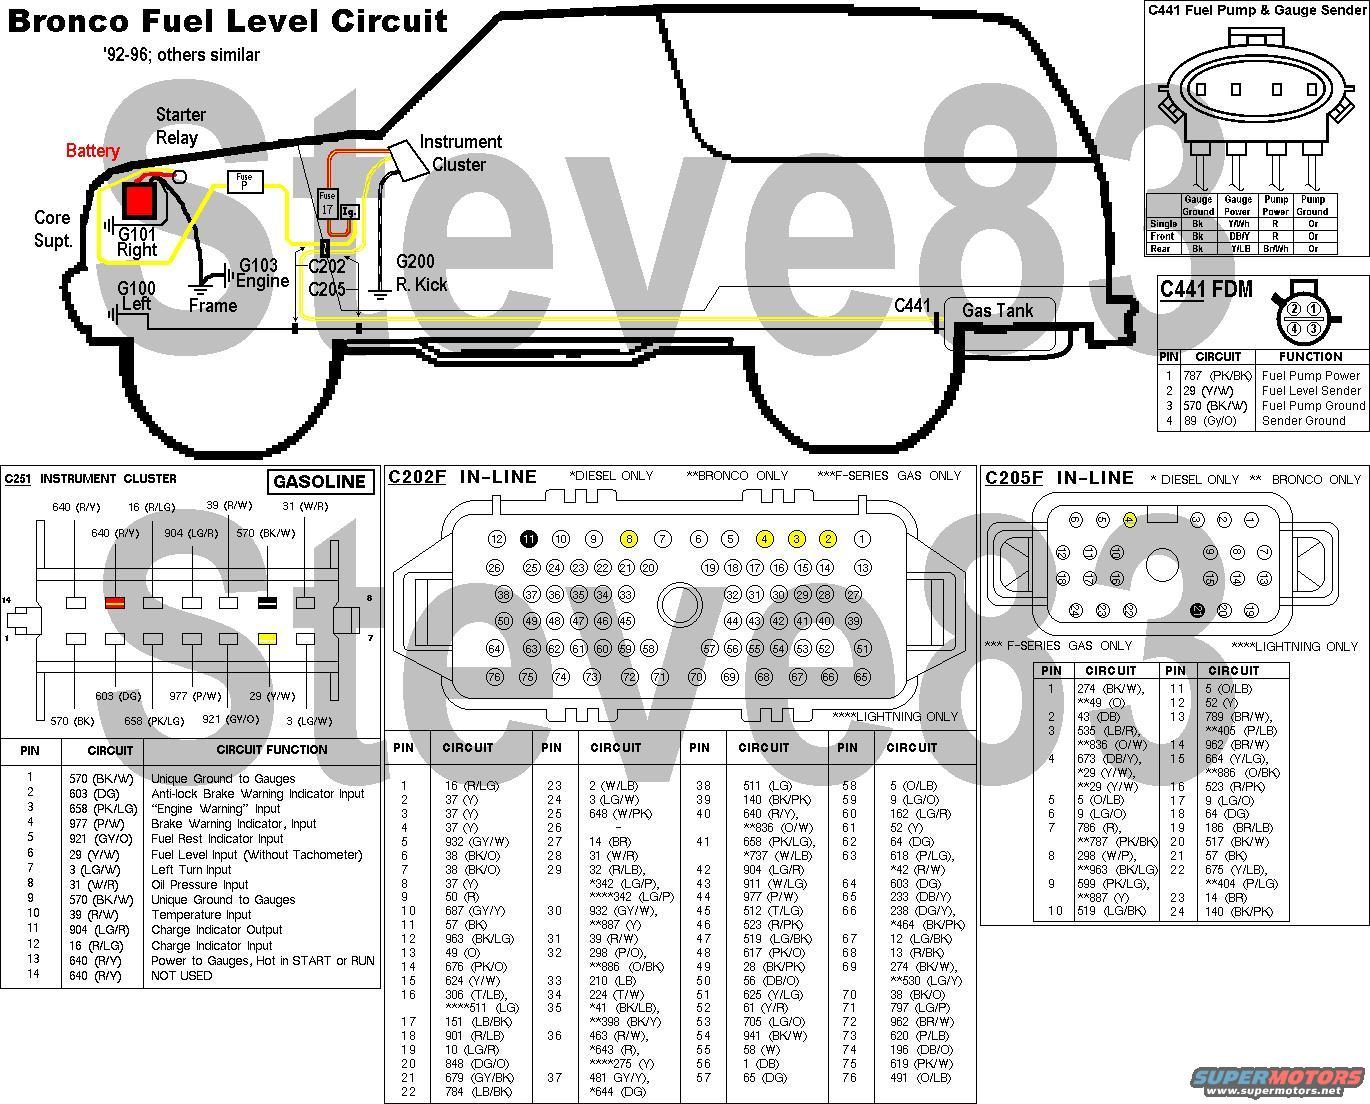 Connector Location & Diagram in 92-96; Fuel Pump and fuel level sender  share connector C441 at Rear cross member. Source: by miesk5 at FSB